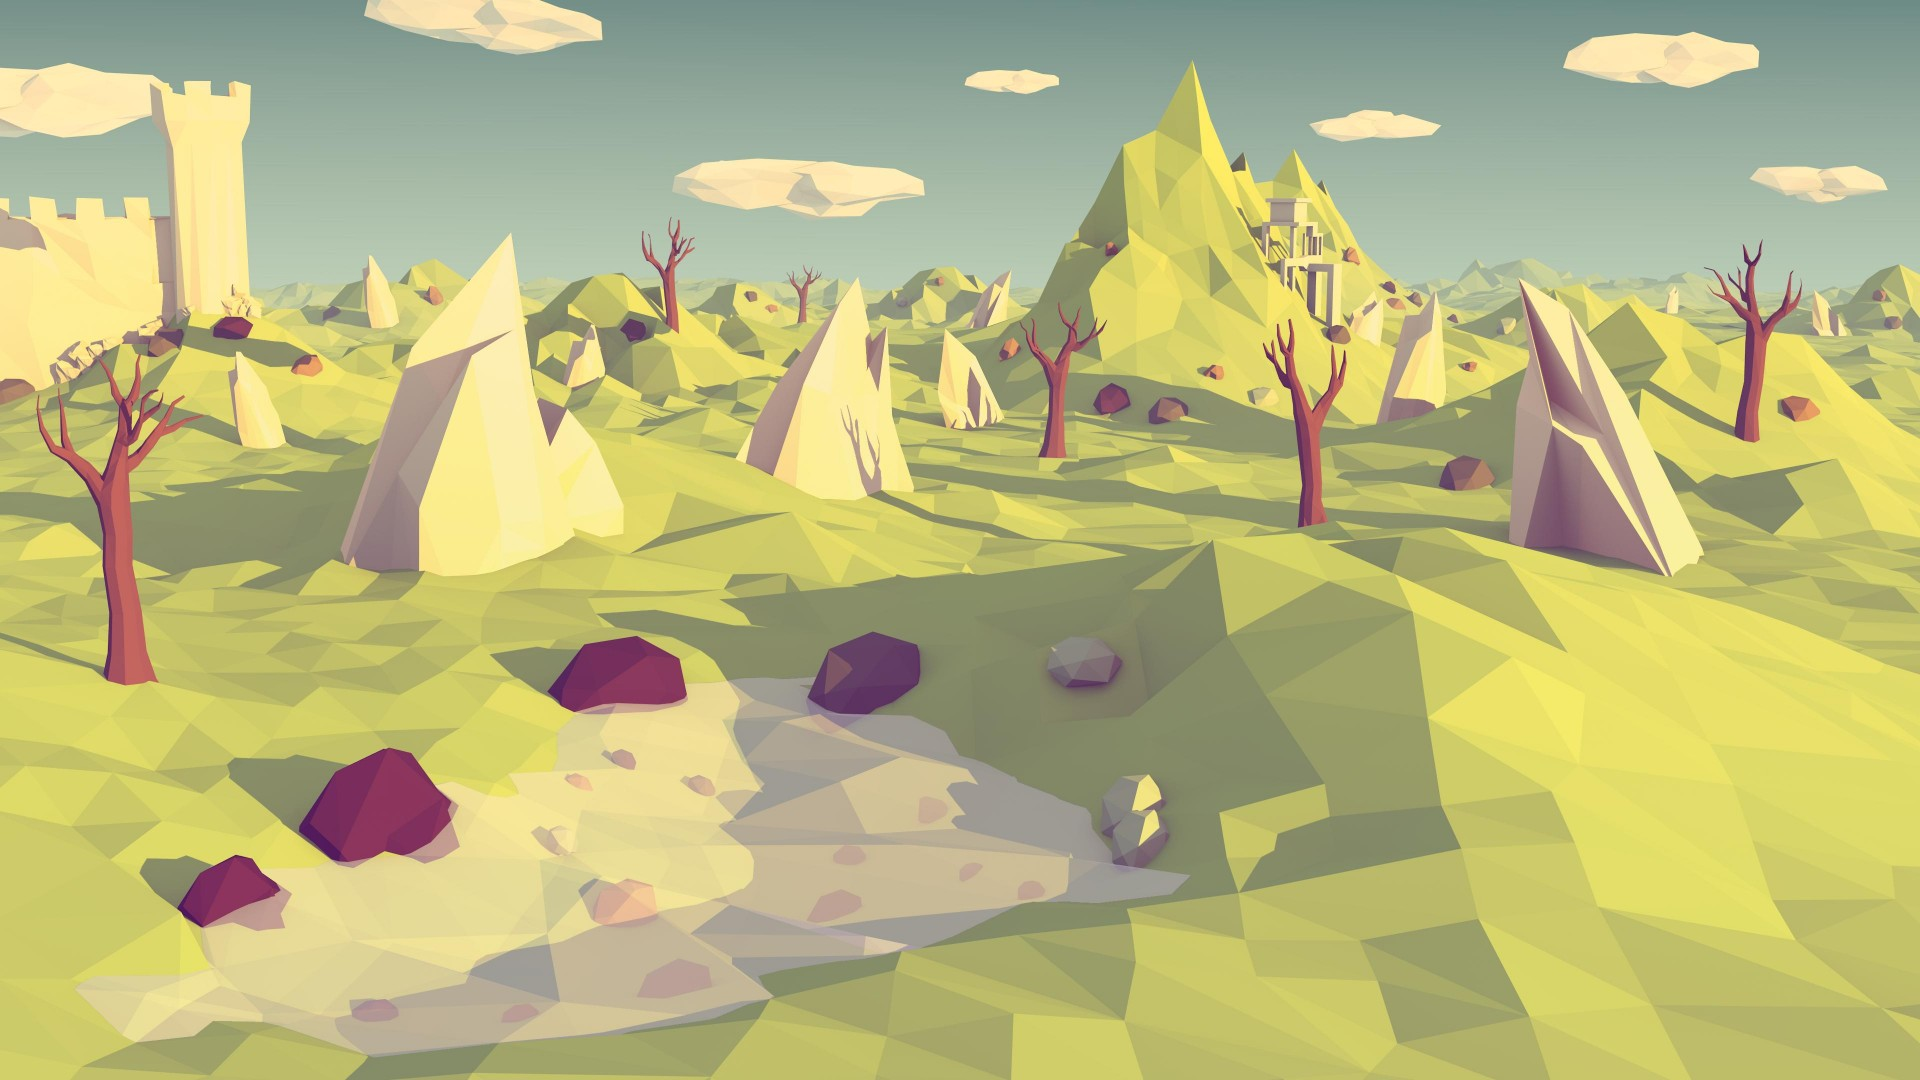 Polygon 4k 5k Wallpaper Landscape Nature Low Poly Horizontal